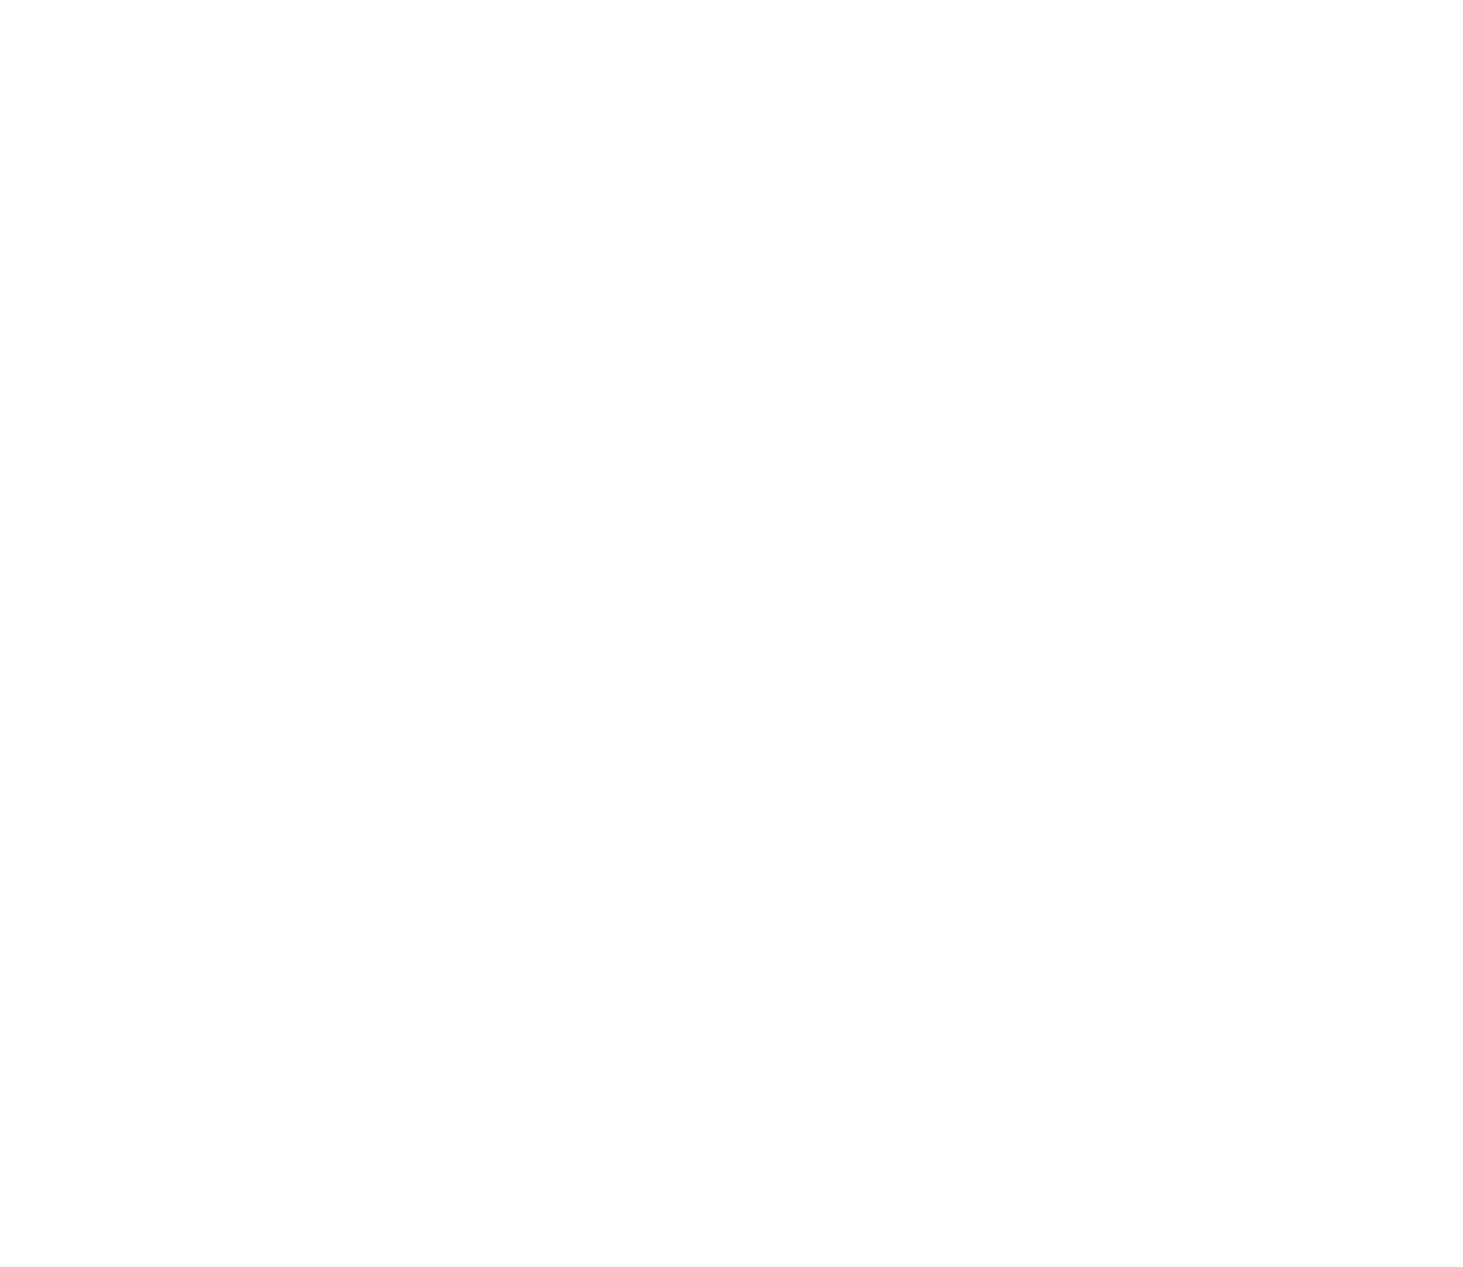 What's Your Issue?